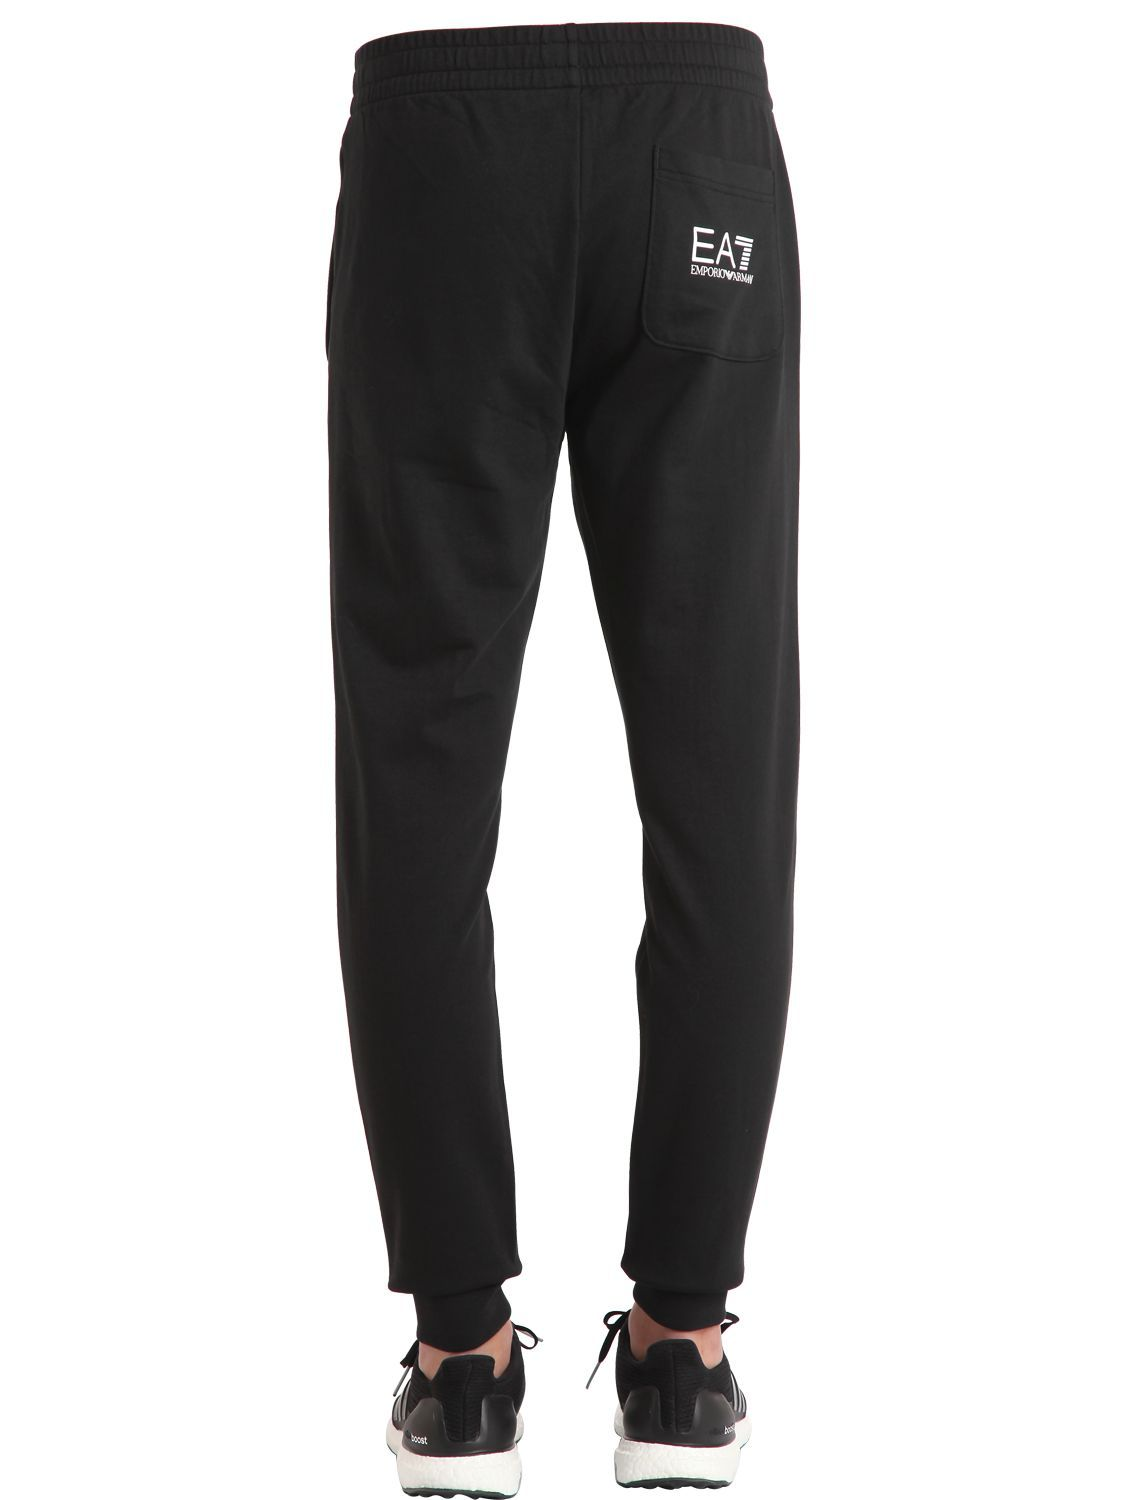 ba25c06a5e55ac EA7 EMPORIO ARMANI - TRAIN LOGO SERIES COTTON SWEATPANTS - PANTS - BLACK -  LUISAVIAROMA -